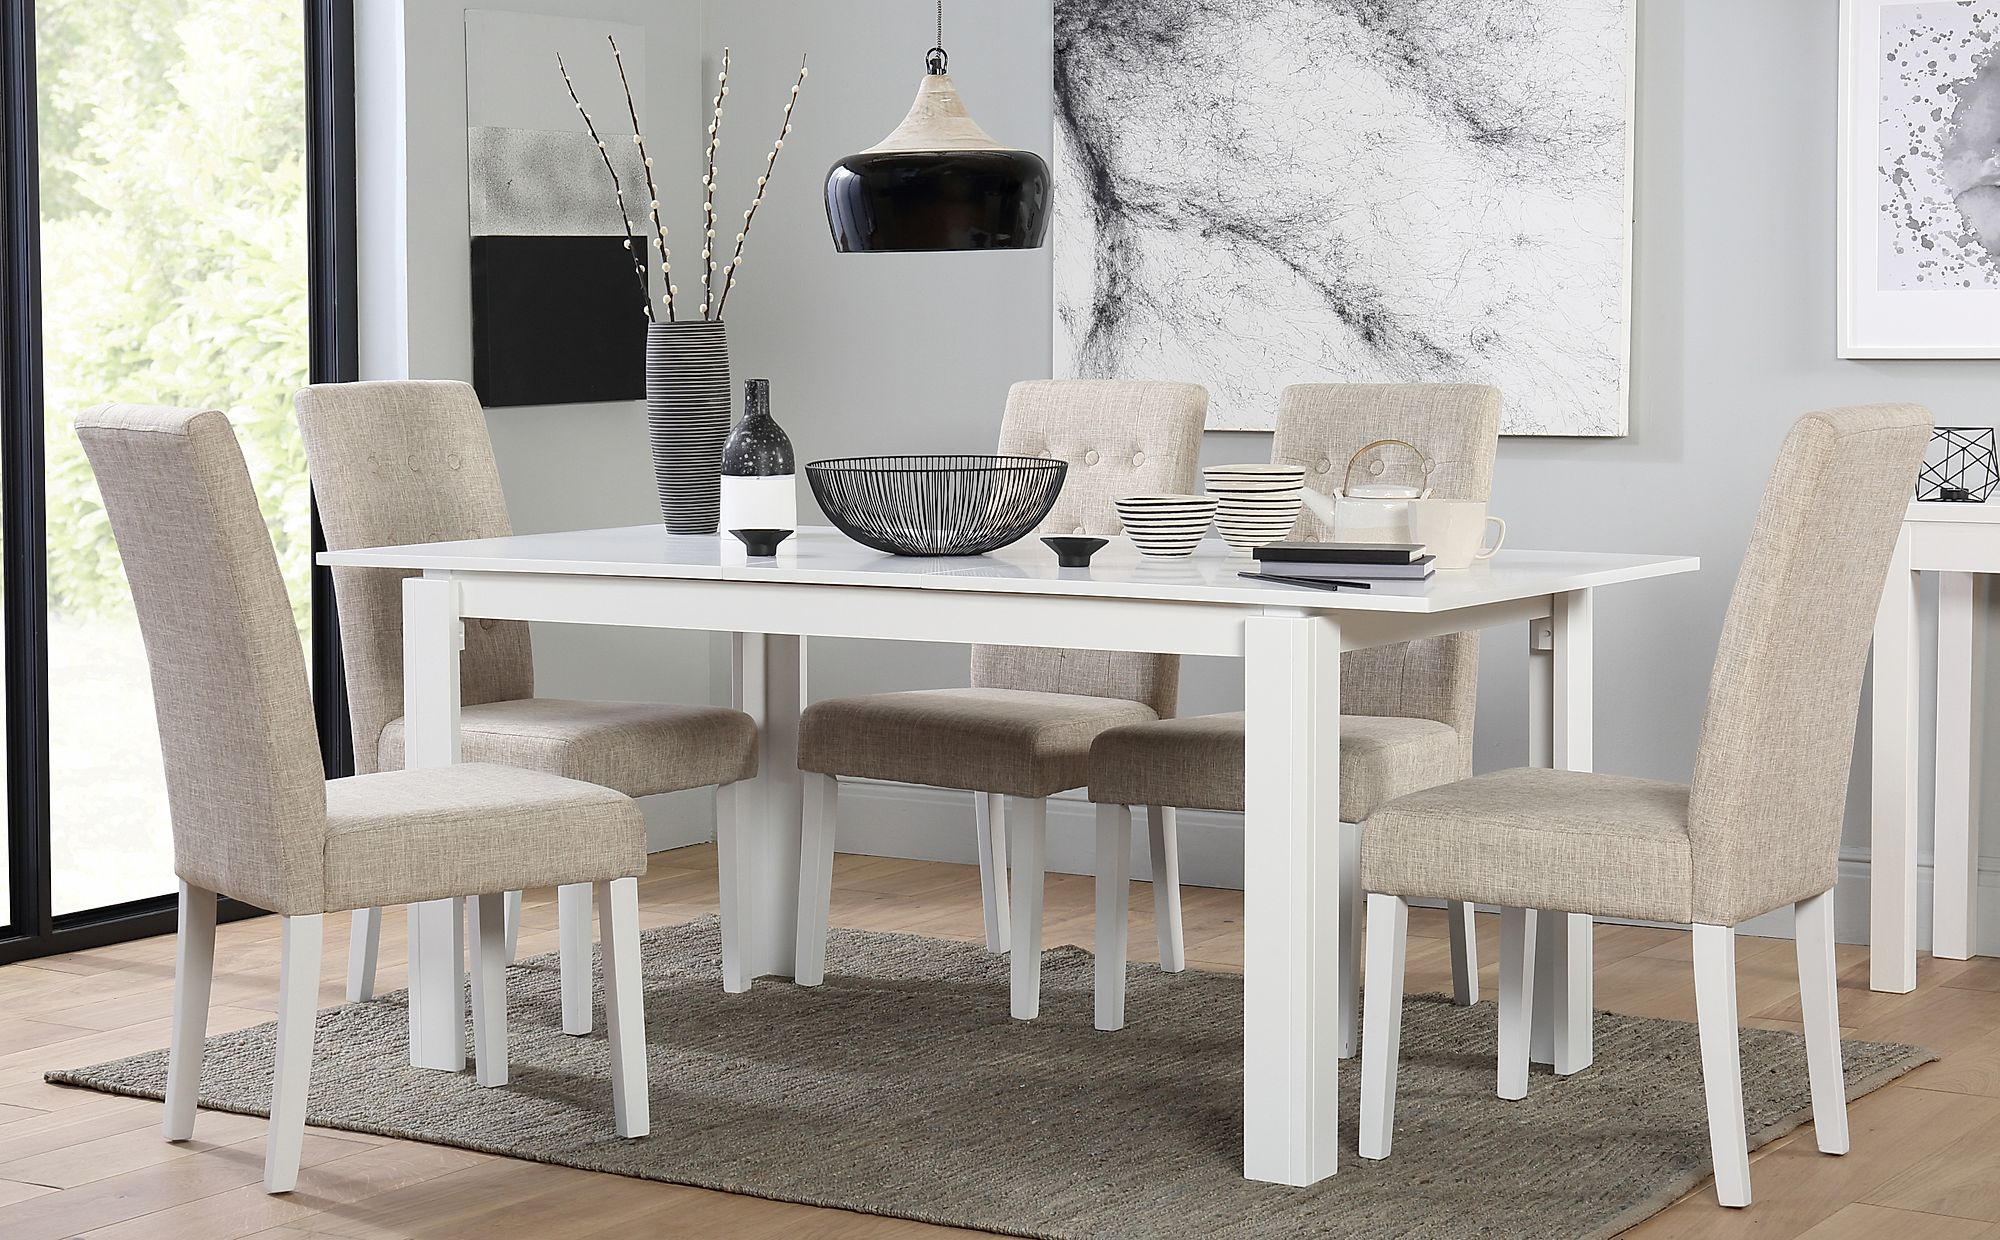 Awesome Details About Aspen Regent Extending White Dining Table 4 6 Fabric Chairs Set Oatmeal Andrewgaddart Wooden Chair Designs For Living Room Andrewgaddartcom